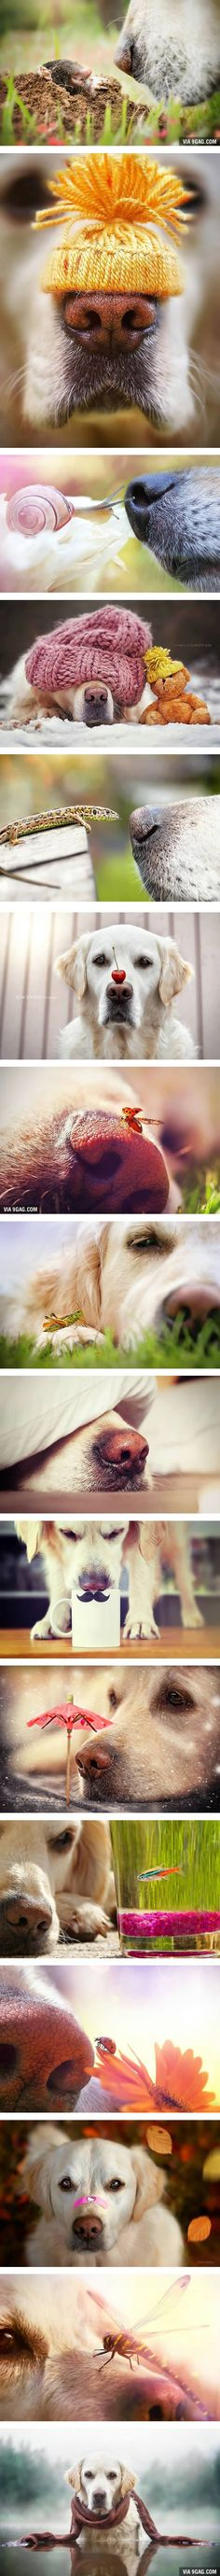 This Dog Owner Take Pictures Of His Golden Retriever's Nose Because He Just Loves It